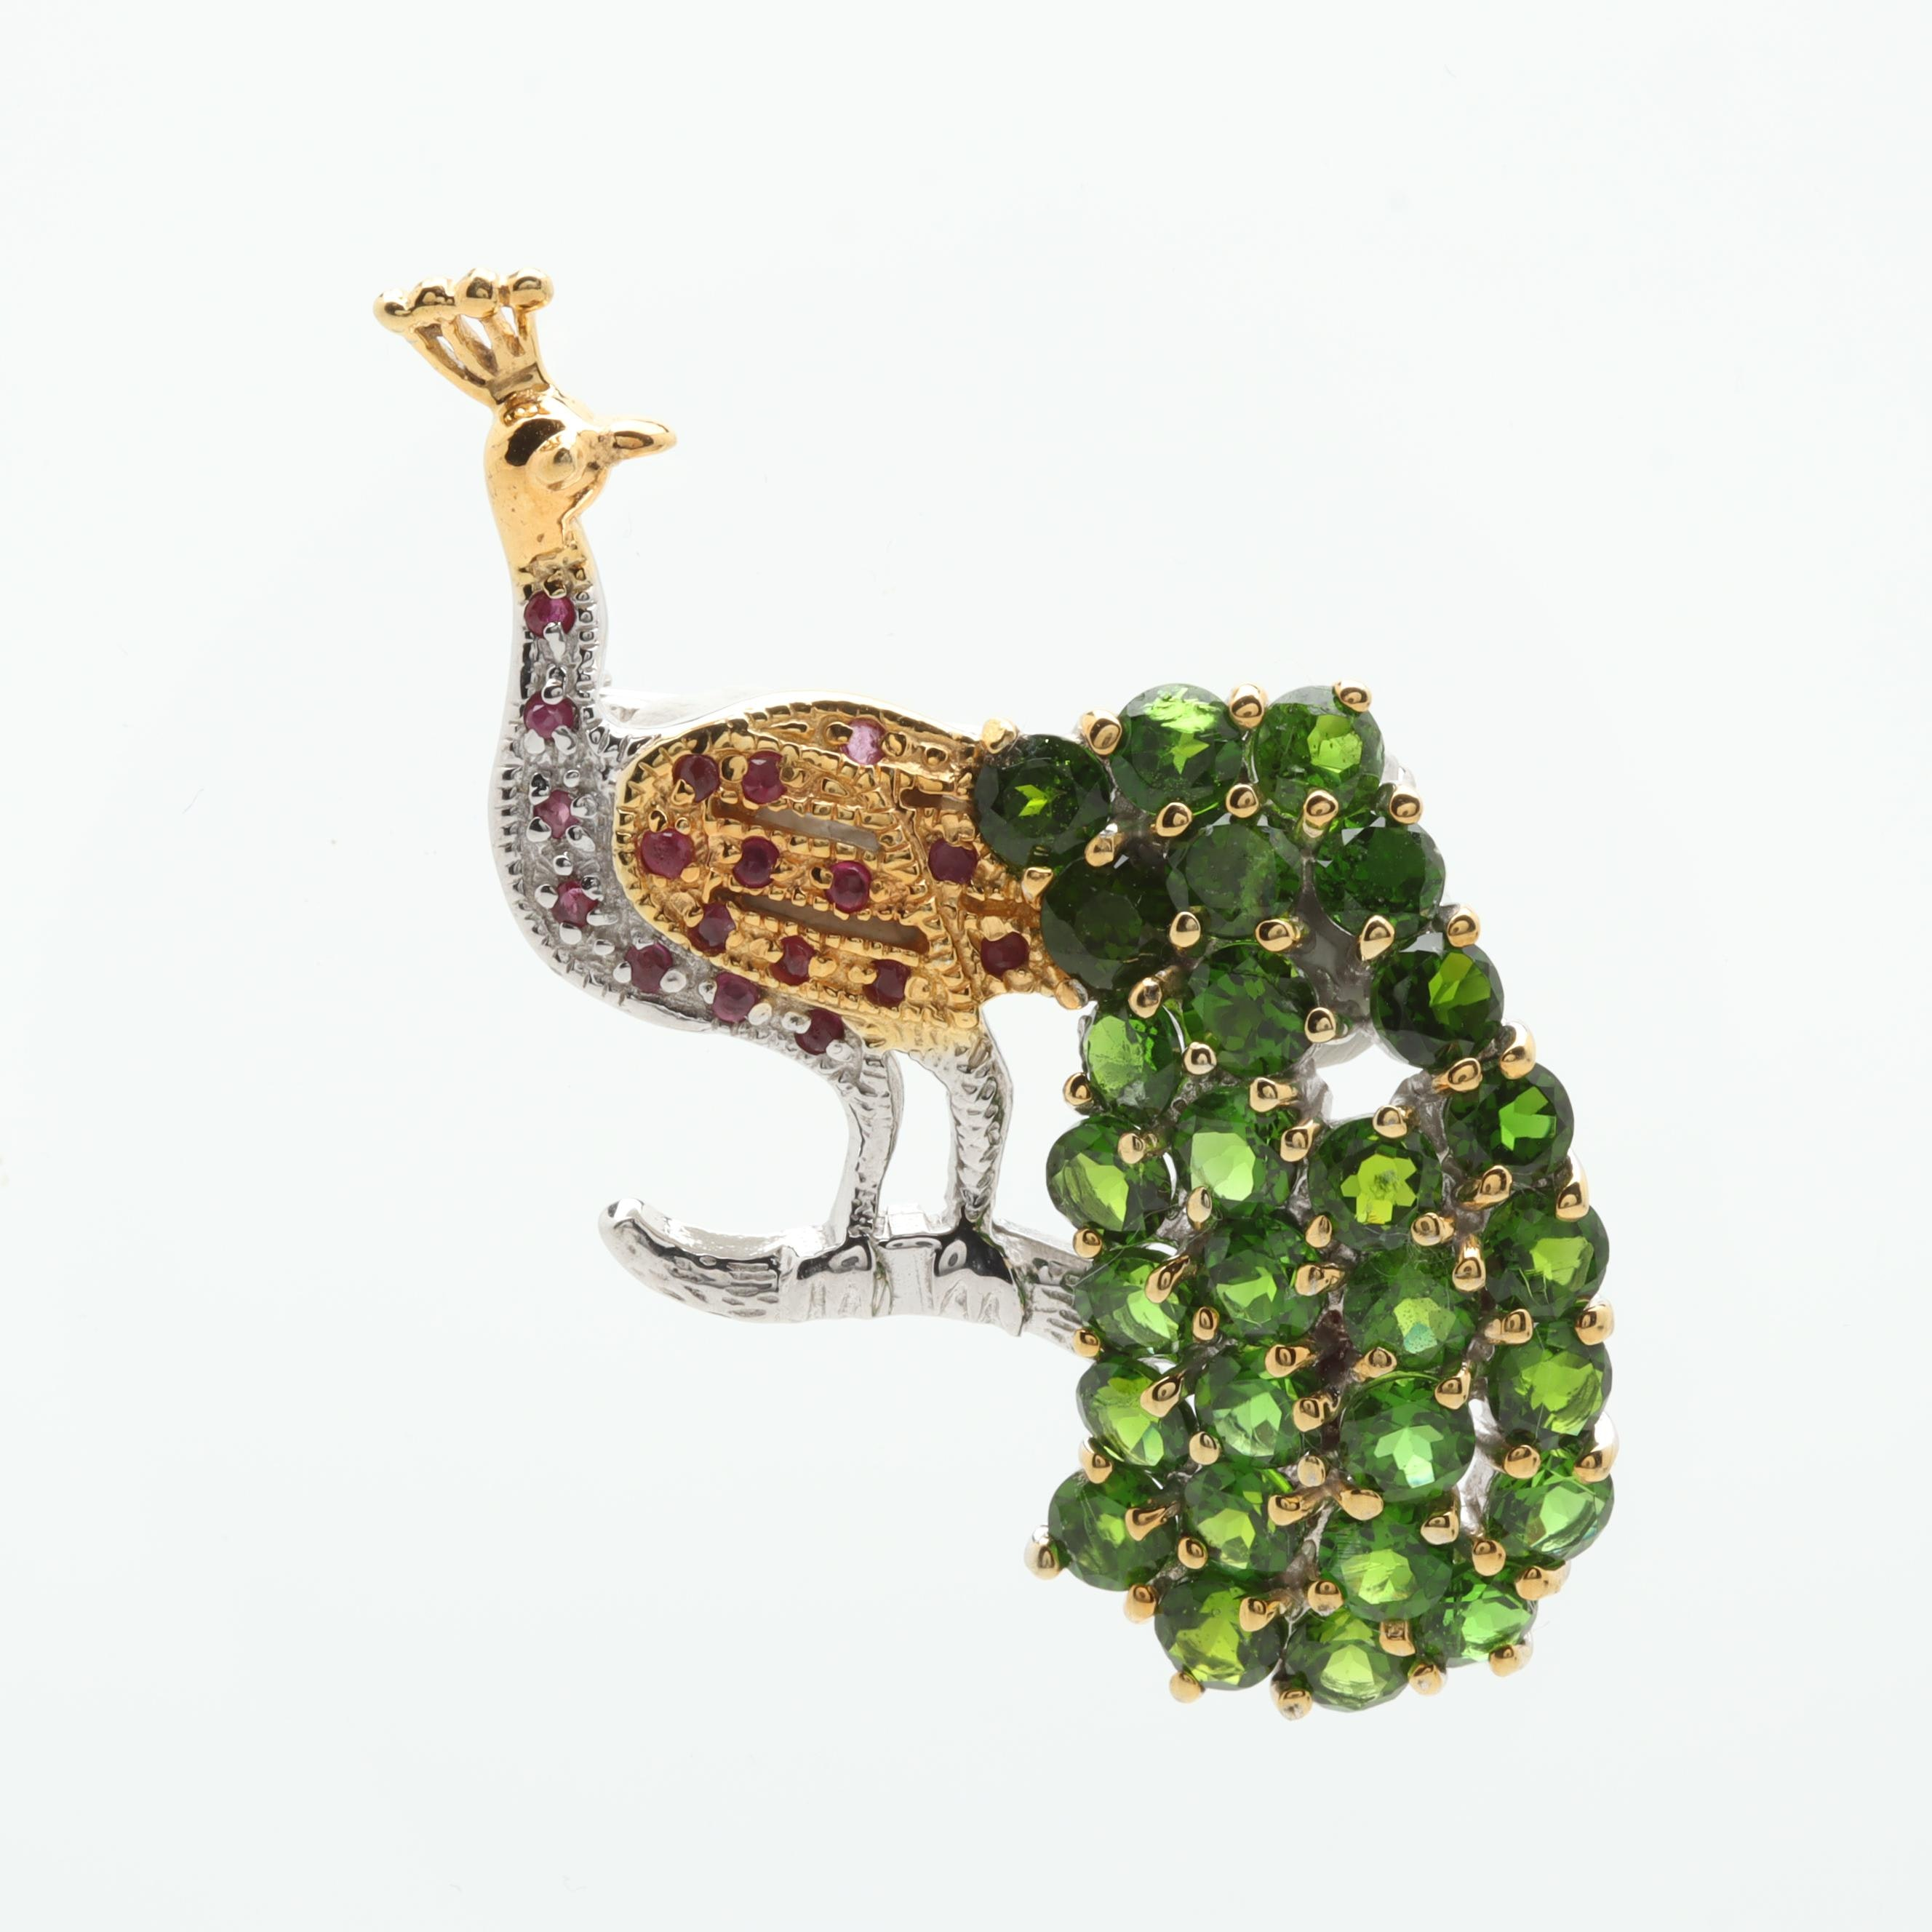 Sterling Silver Diopside and Ruby Peacock Brooch